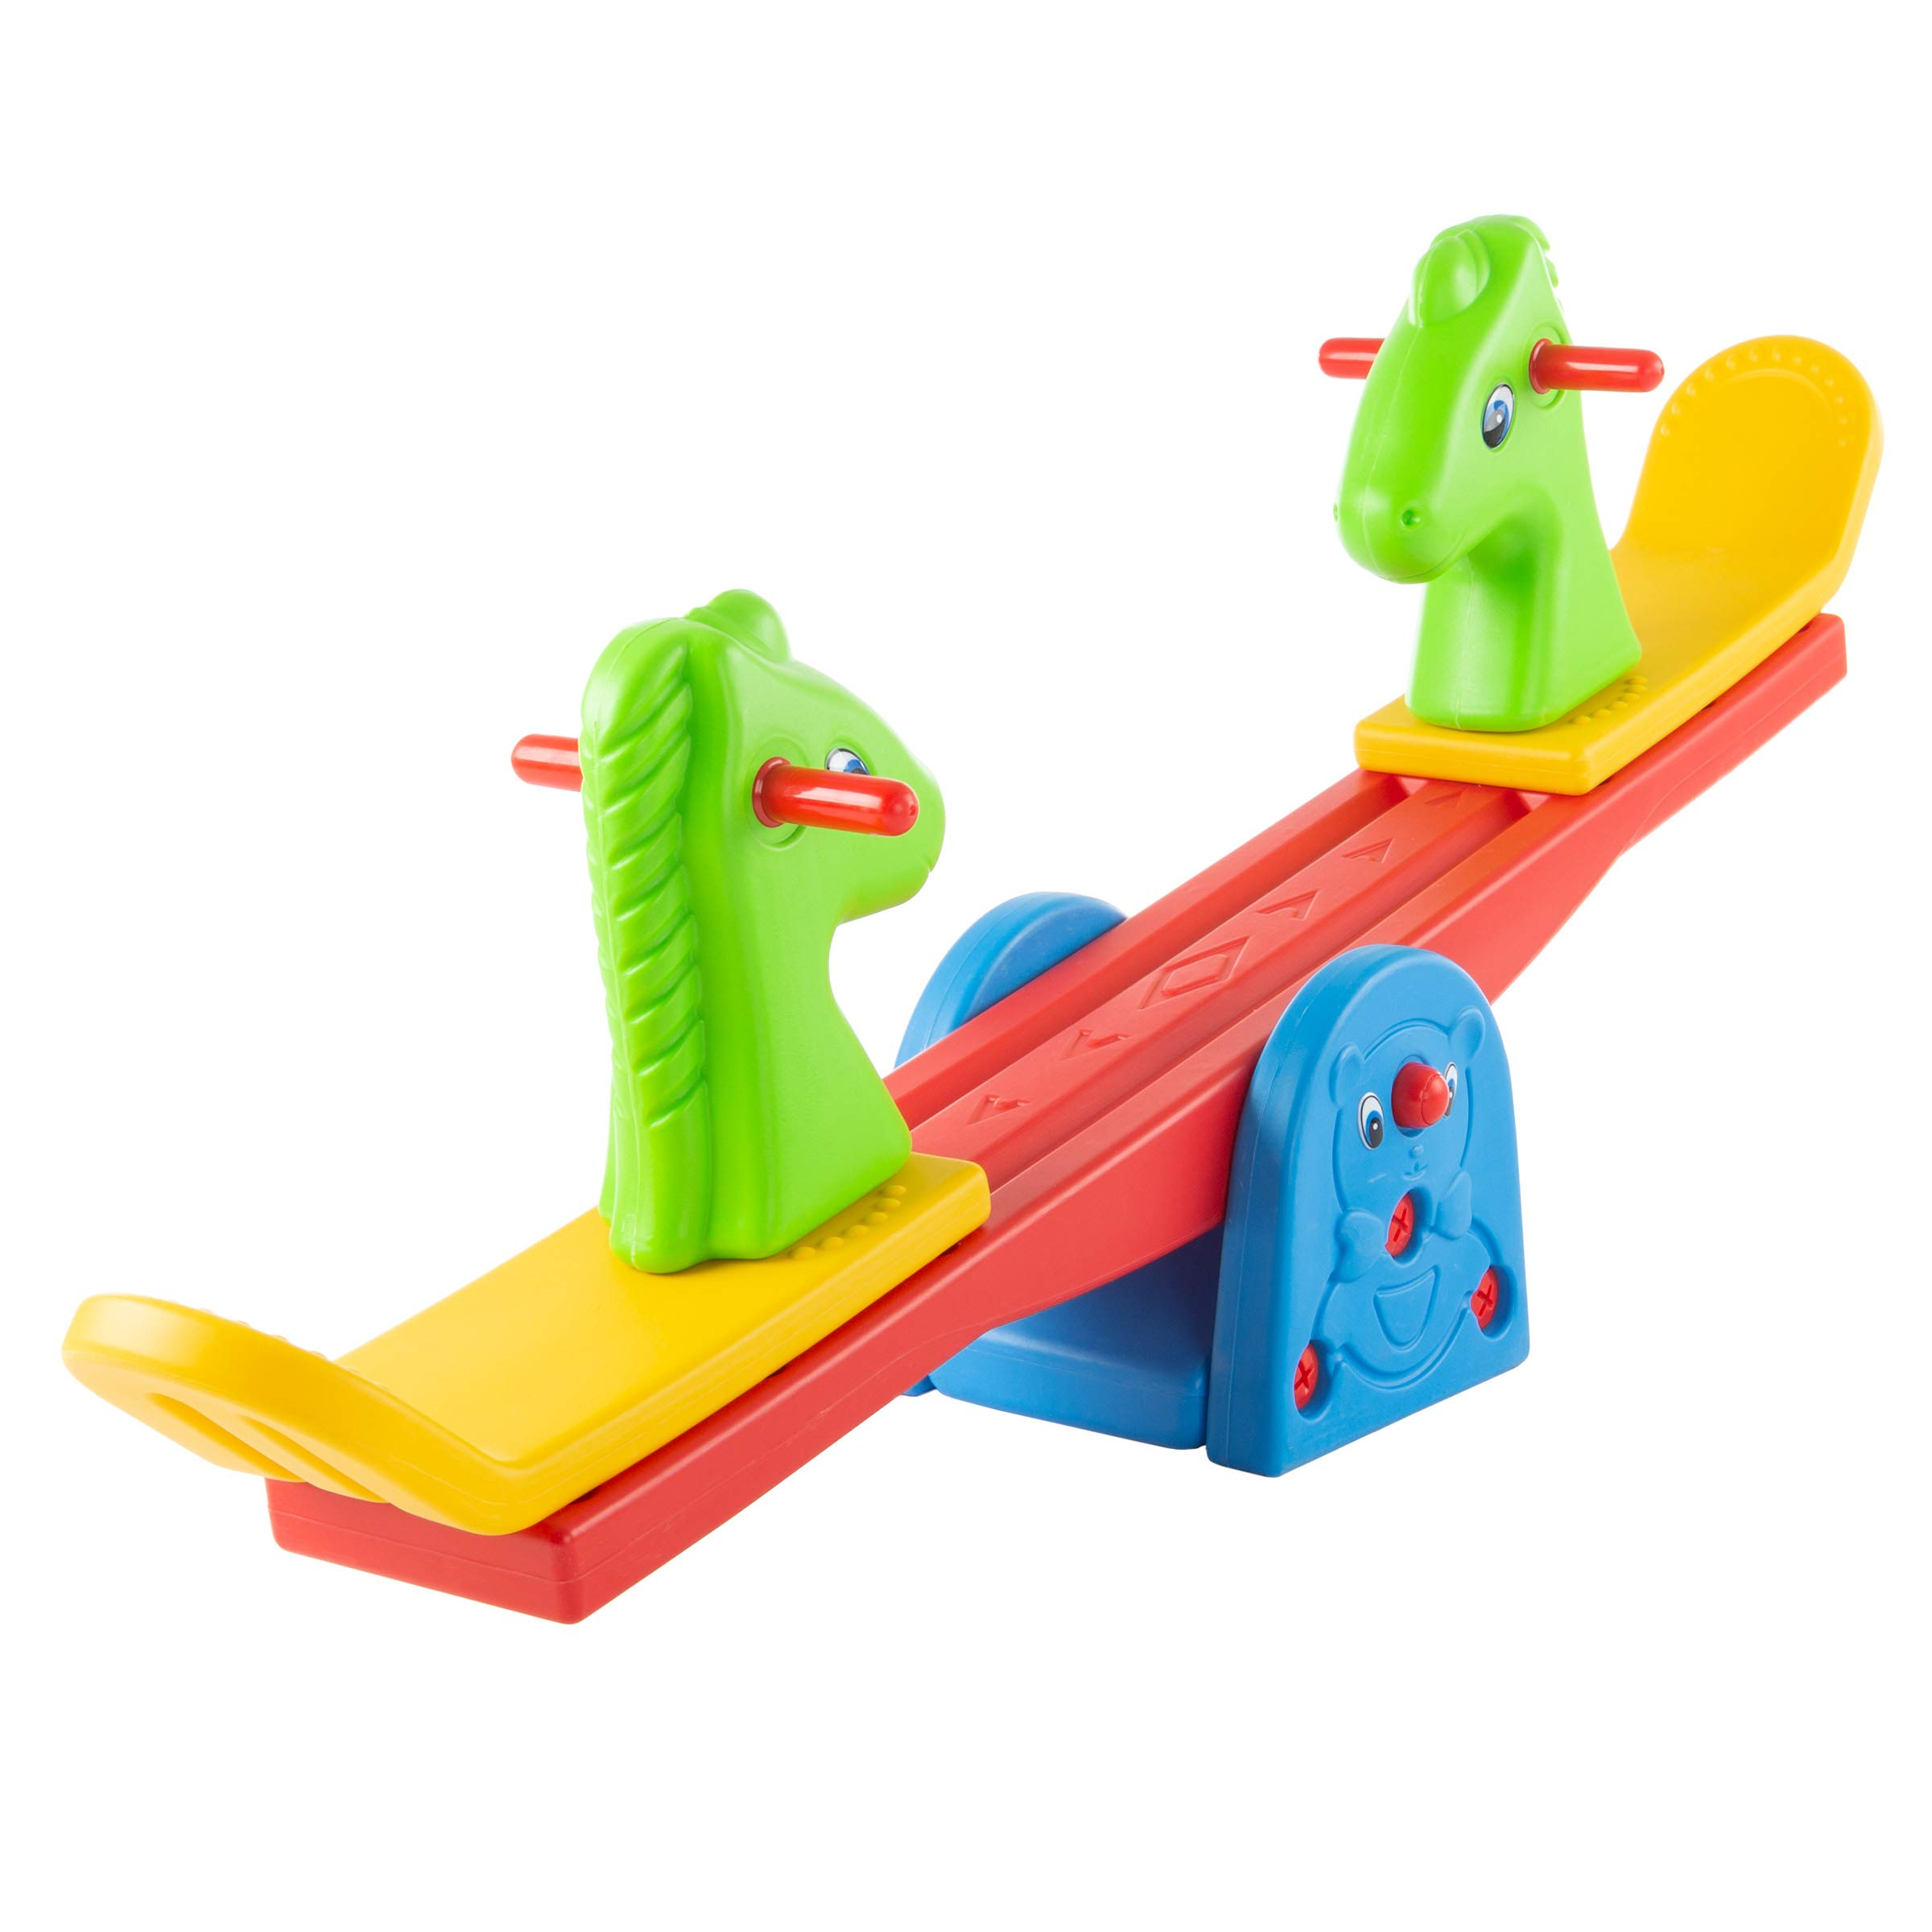 Hey!Play! Seesaw – Teeter Totter Backyard Or Playroom Equipment with Easy-Grip Handles for Toddlers & Children – Indoor Or Outdoor Rocker Toy